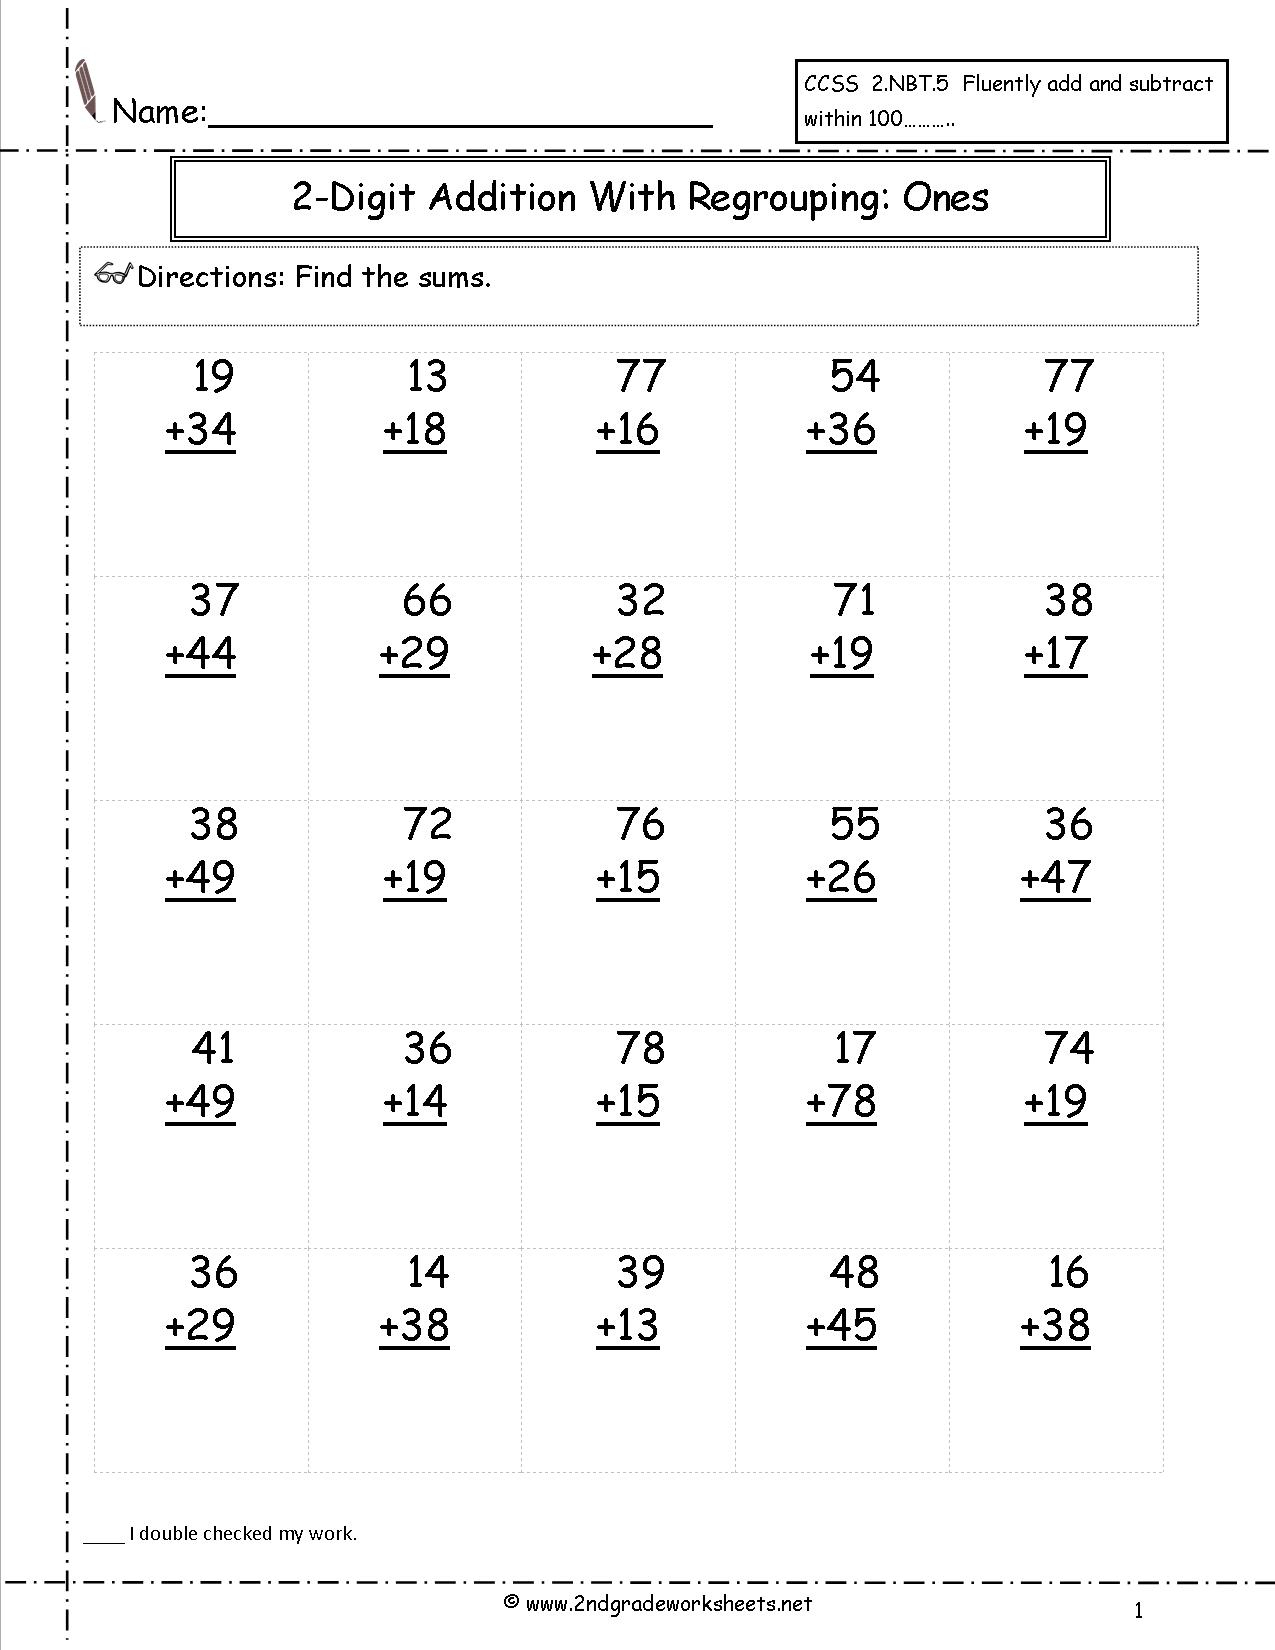 Free Math Worksheets And Printouts - Year 2 Maths Worksheets Free Printable